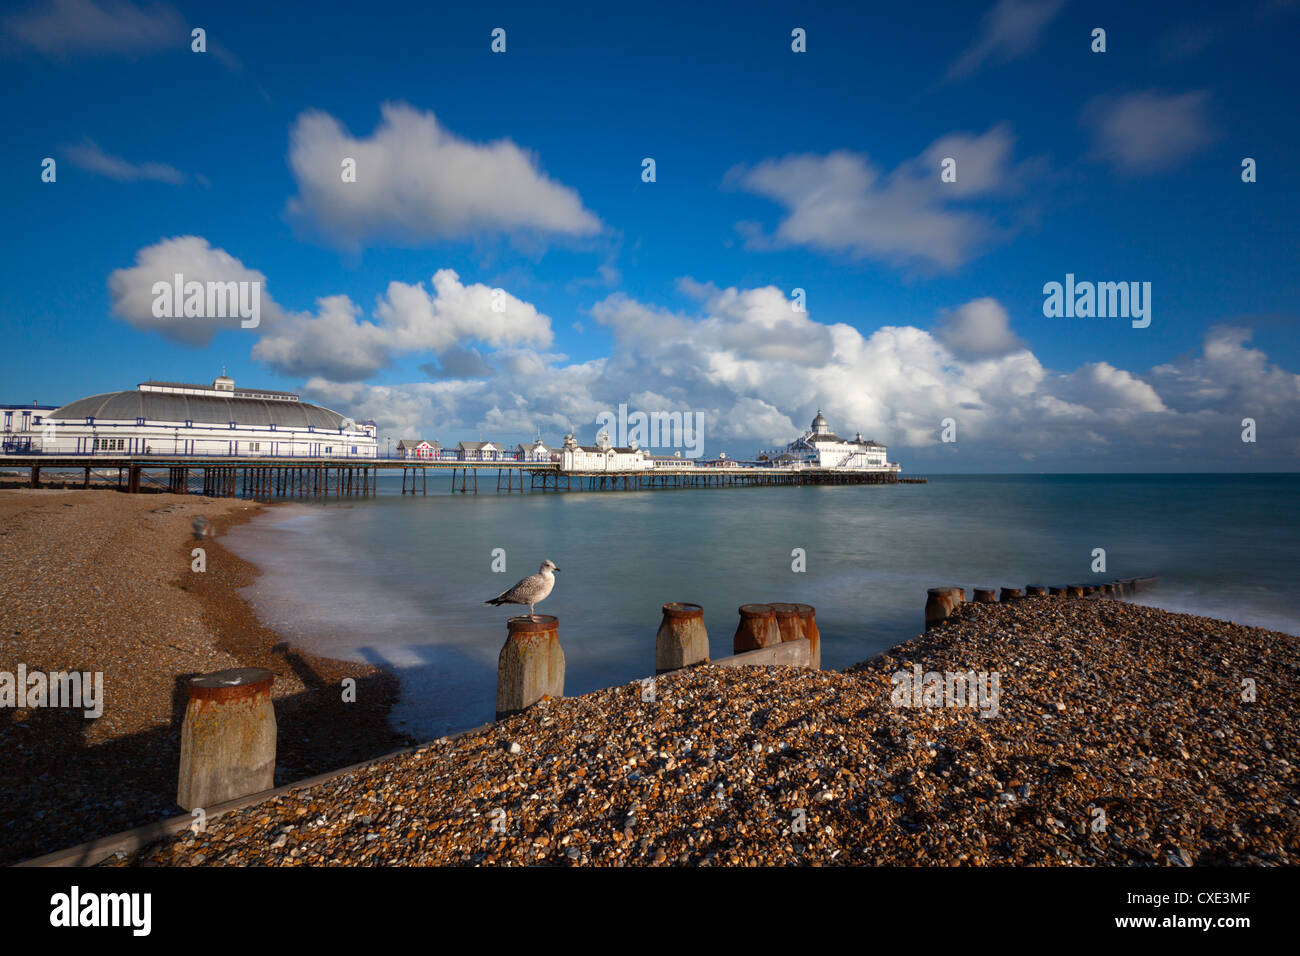 Pebble beach and pier, Eastbourne, East Sussex, England - Stock Image